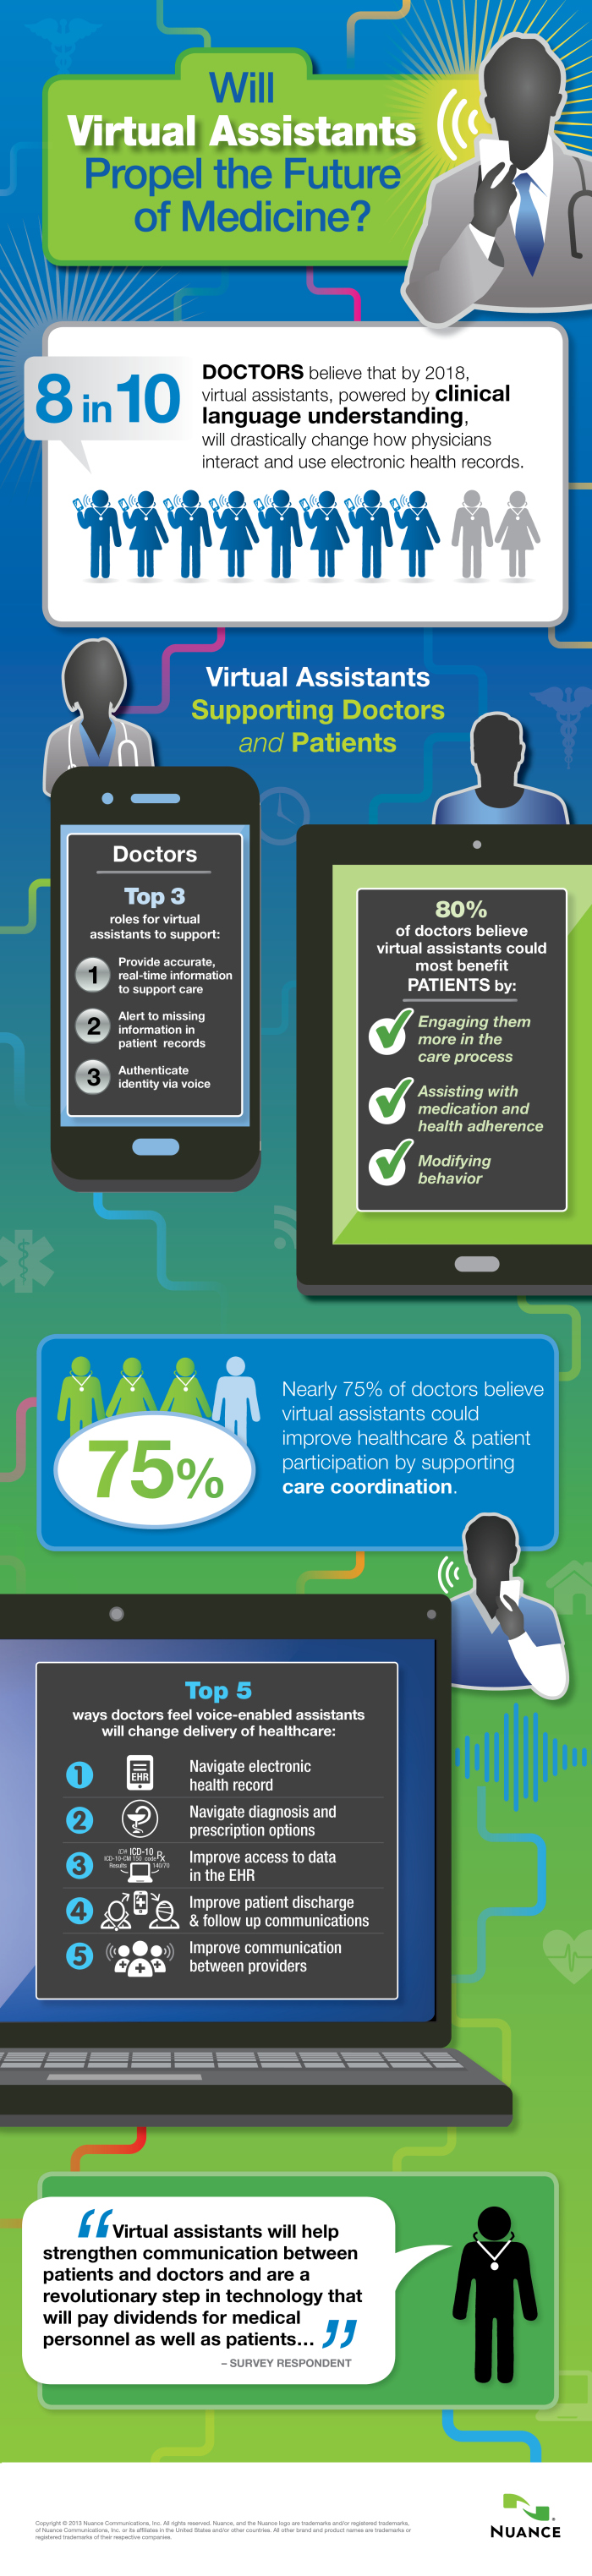 Nuance Virtual Medical Assistants Infographic